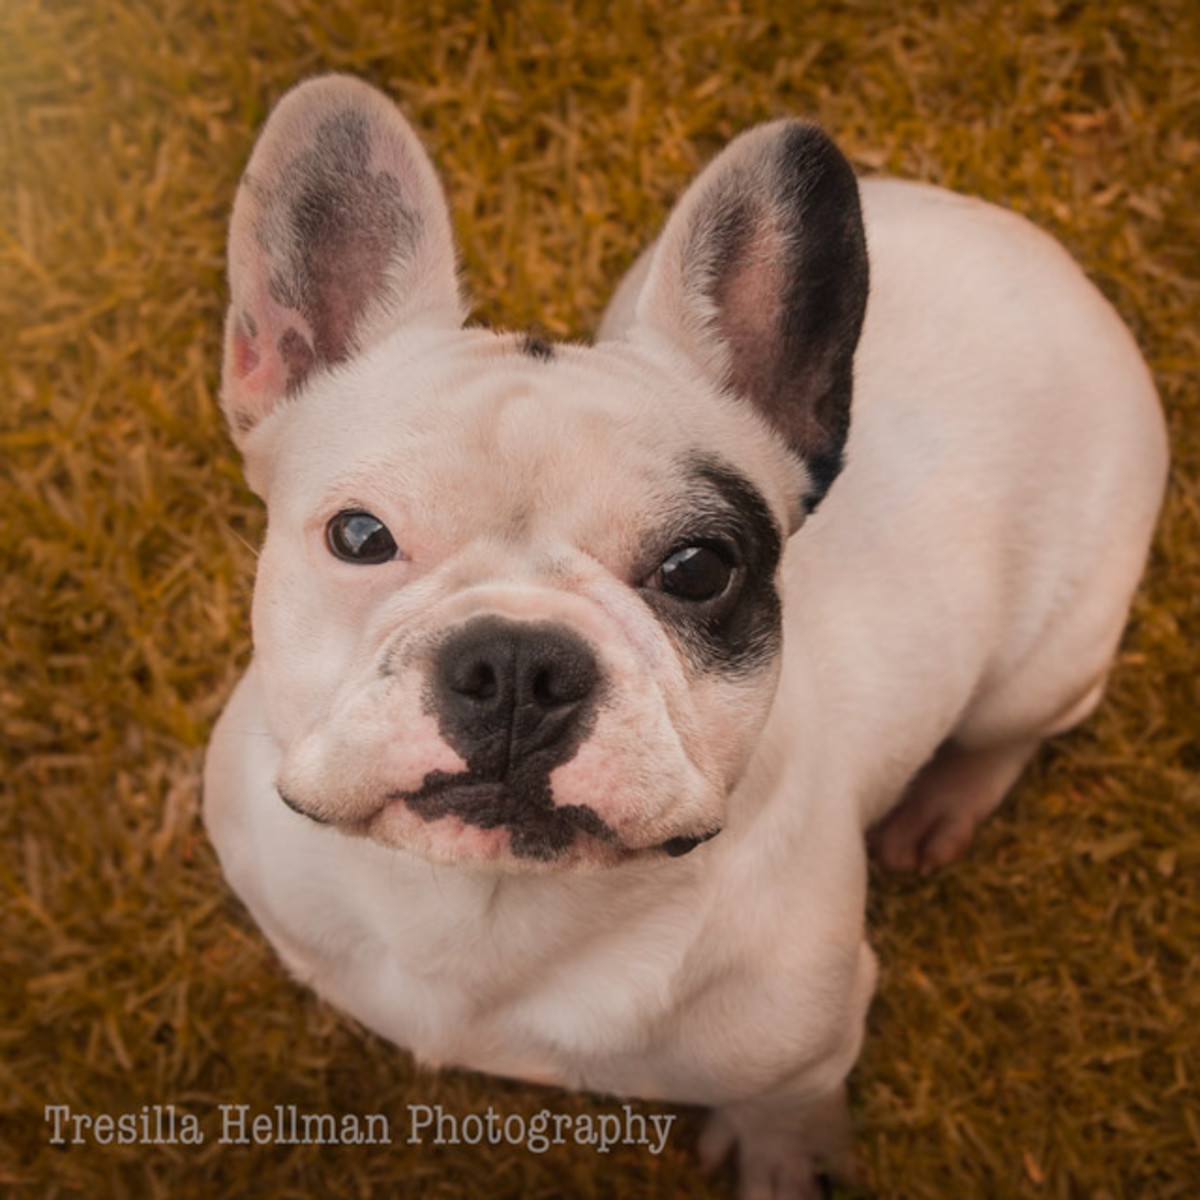 Frankie the pied French Bulldog - pirate like is her sweet & cheeky face.